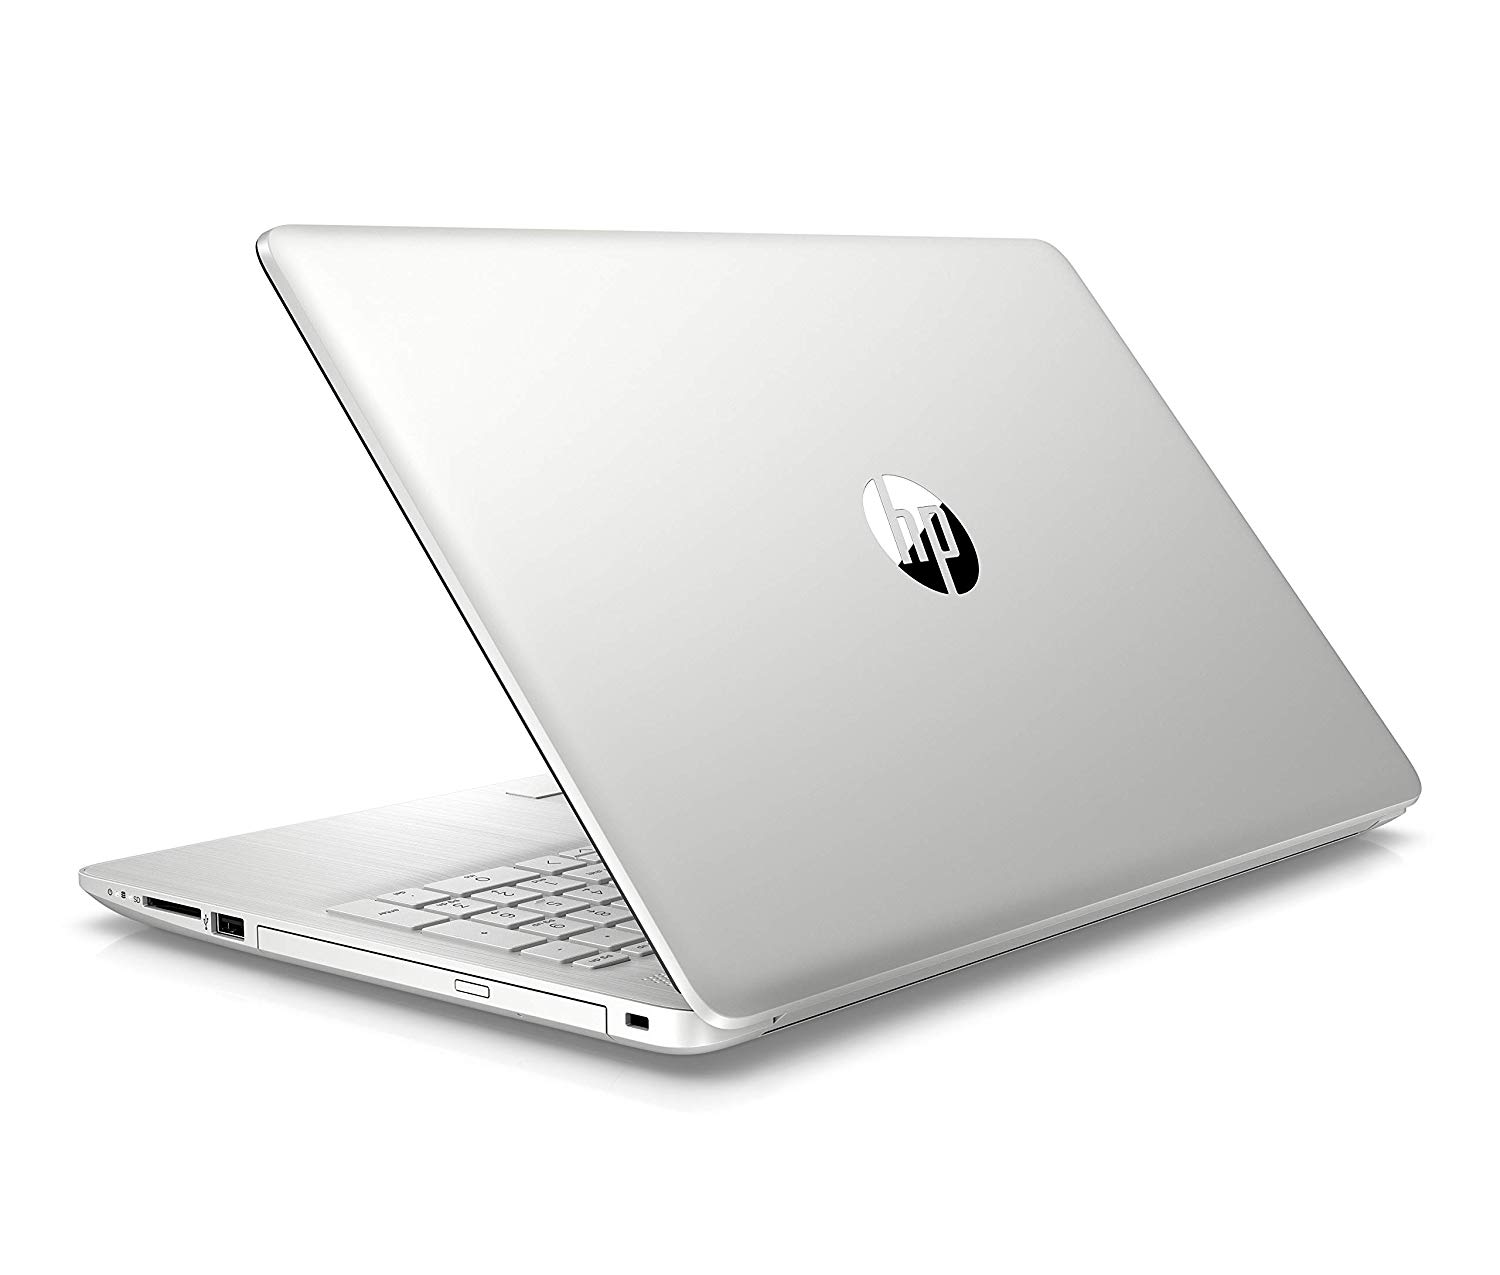 NS Dukan: HP 15 Ryzen R3 15.6-inch Full HD Laptop (4GB/1TB HDD